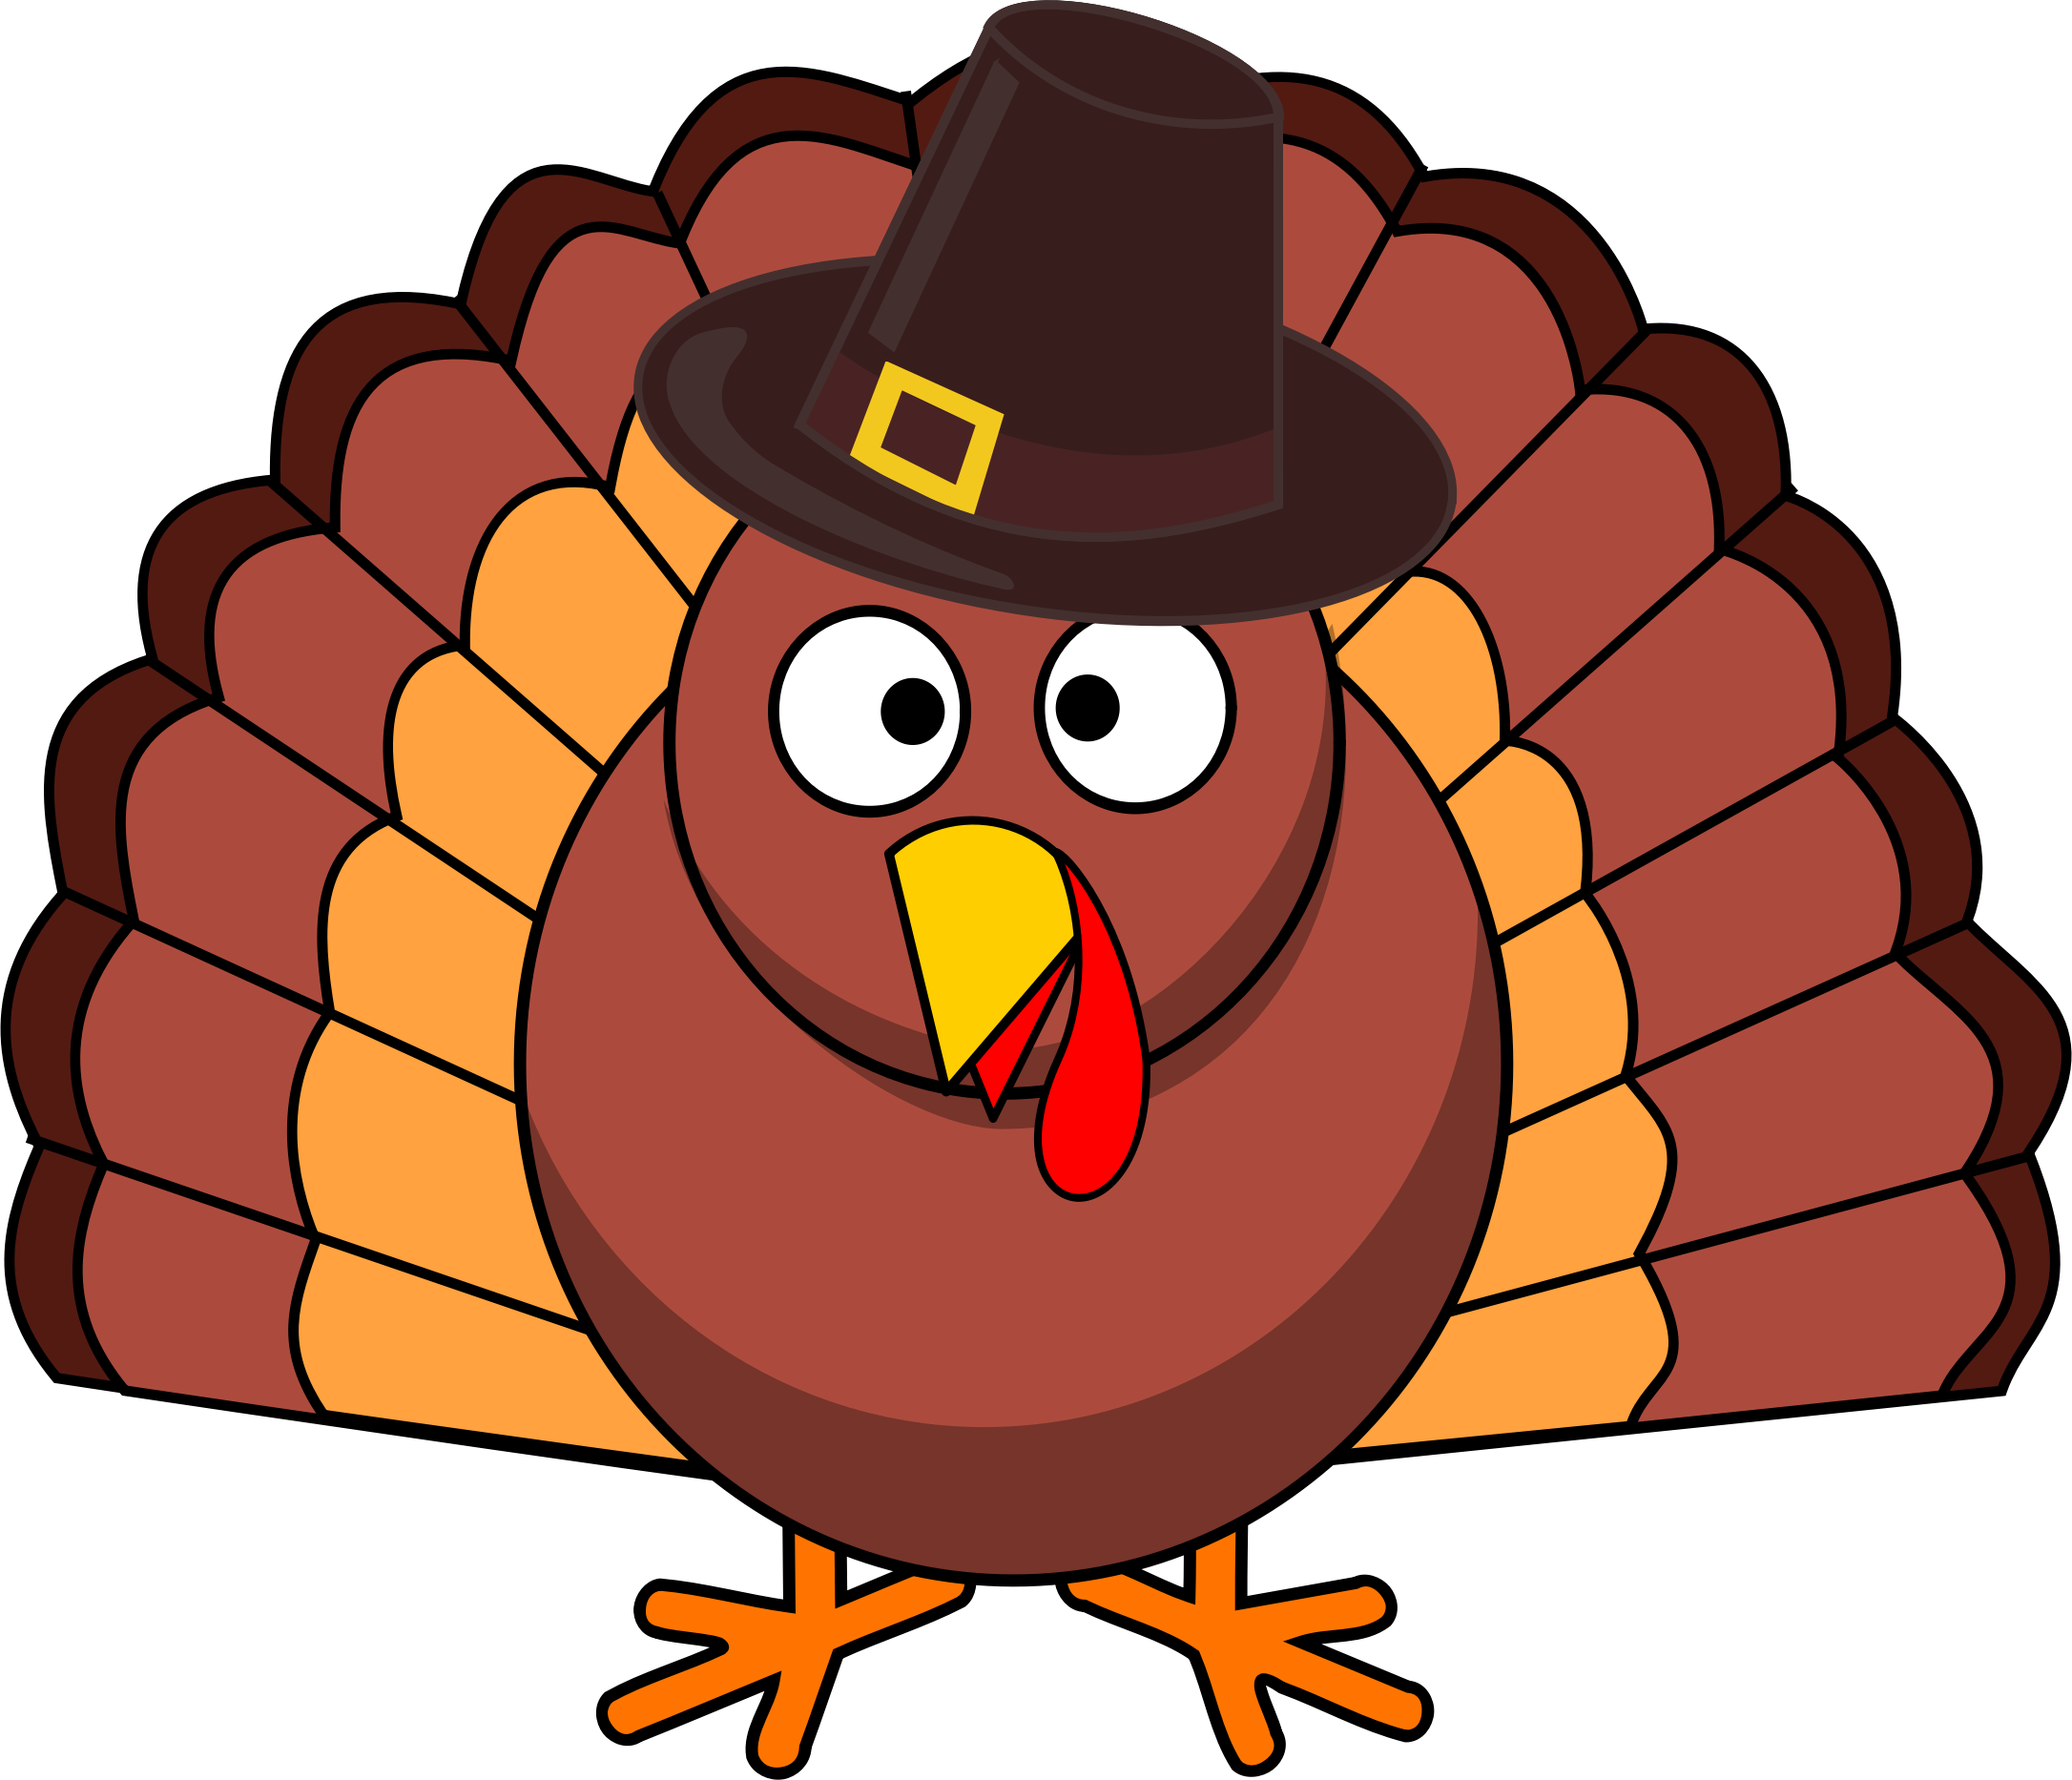 Turkey disguise clipart svg freeuse library Thanksgiving Turkey Drawing at GetDrawings.com | Free for personal ... svg freeuse library